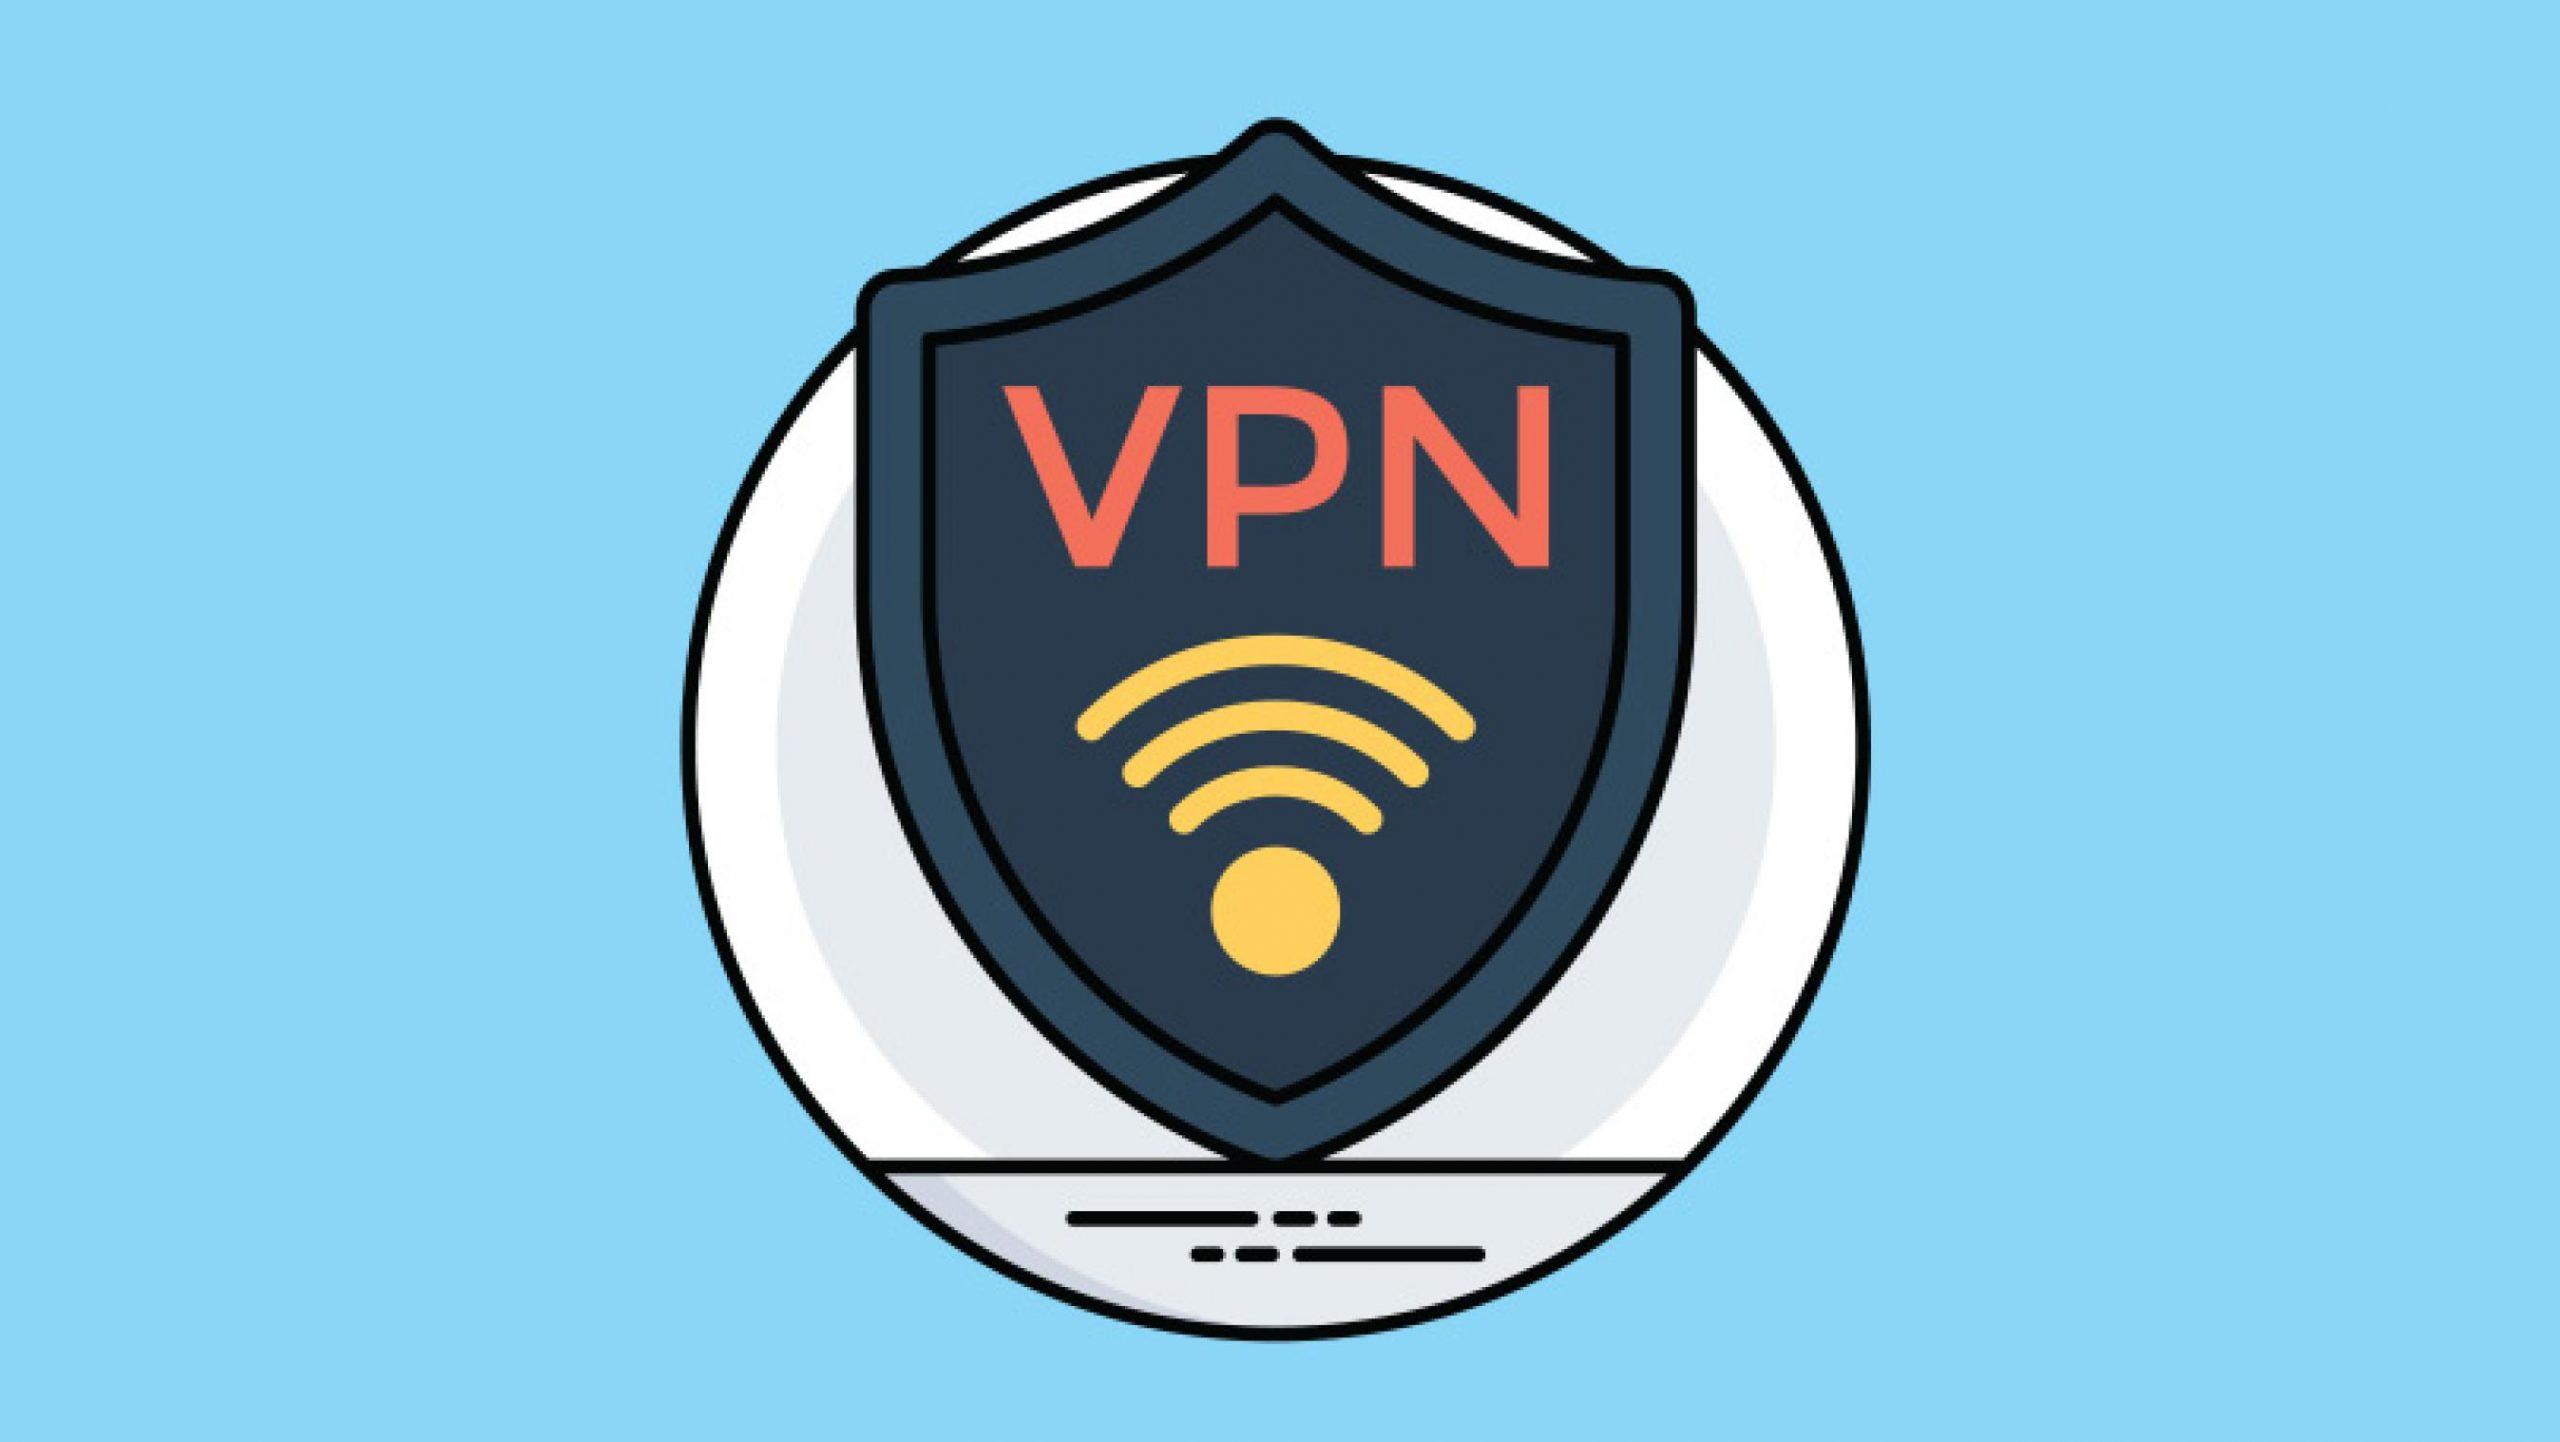 What Is VPN (Virtual Private Network) And Why Should It Be Used?